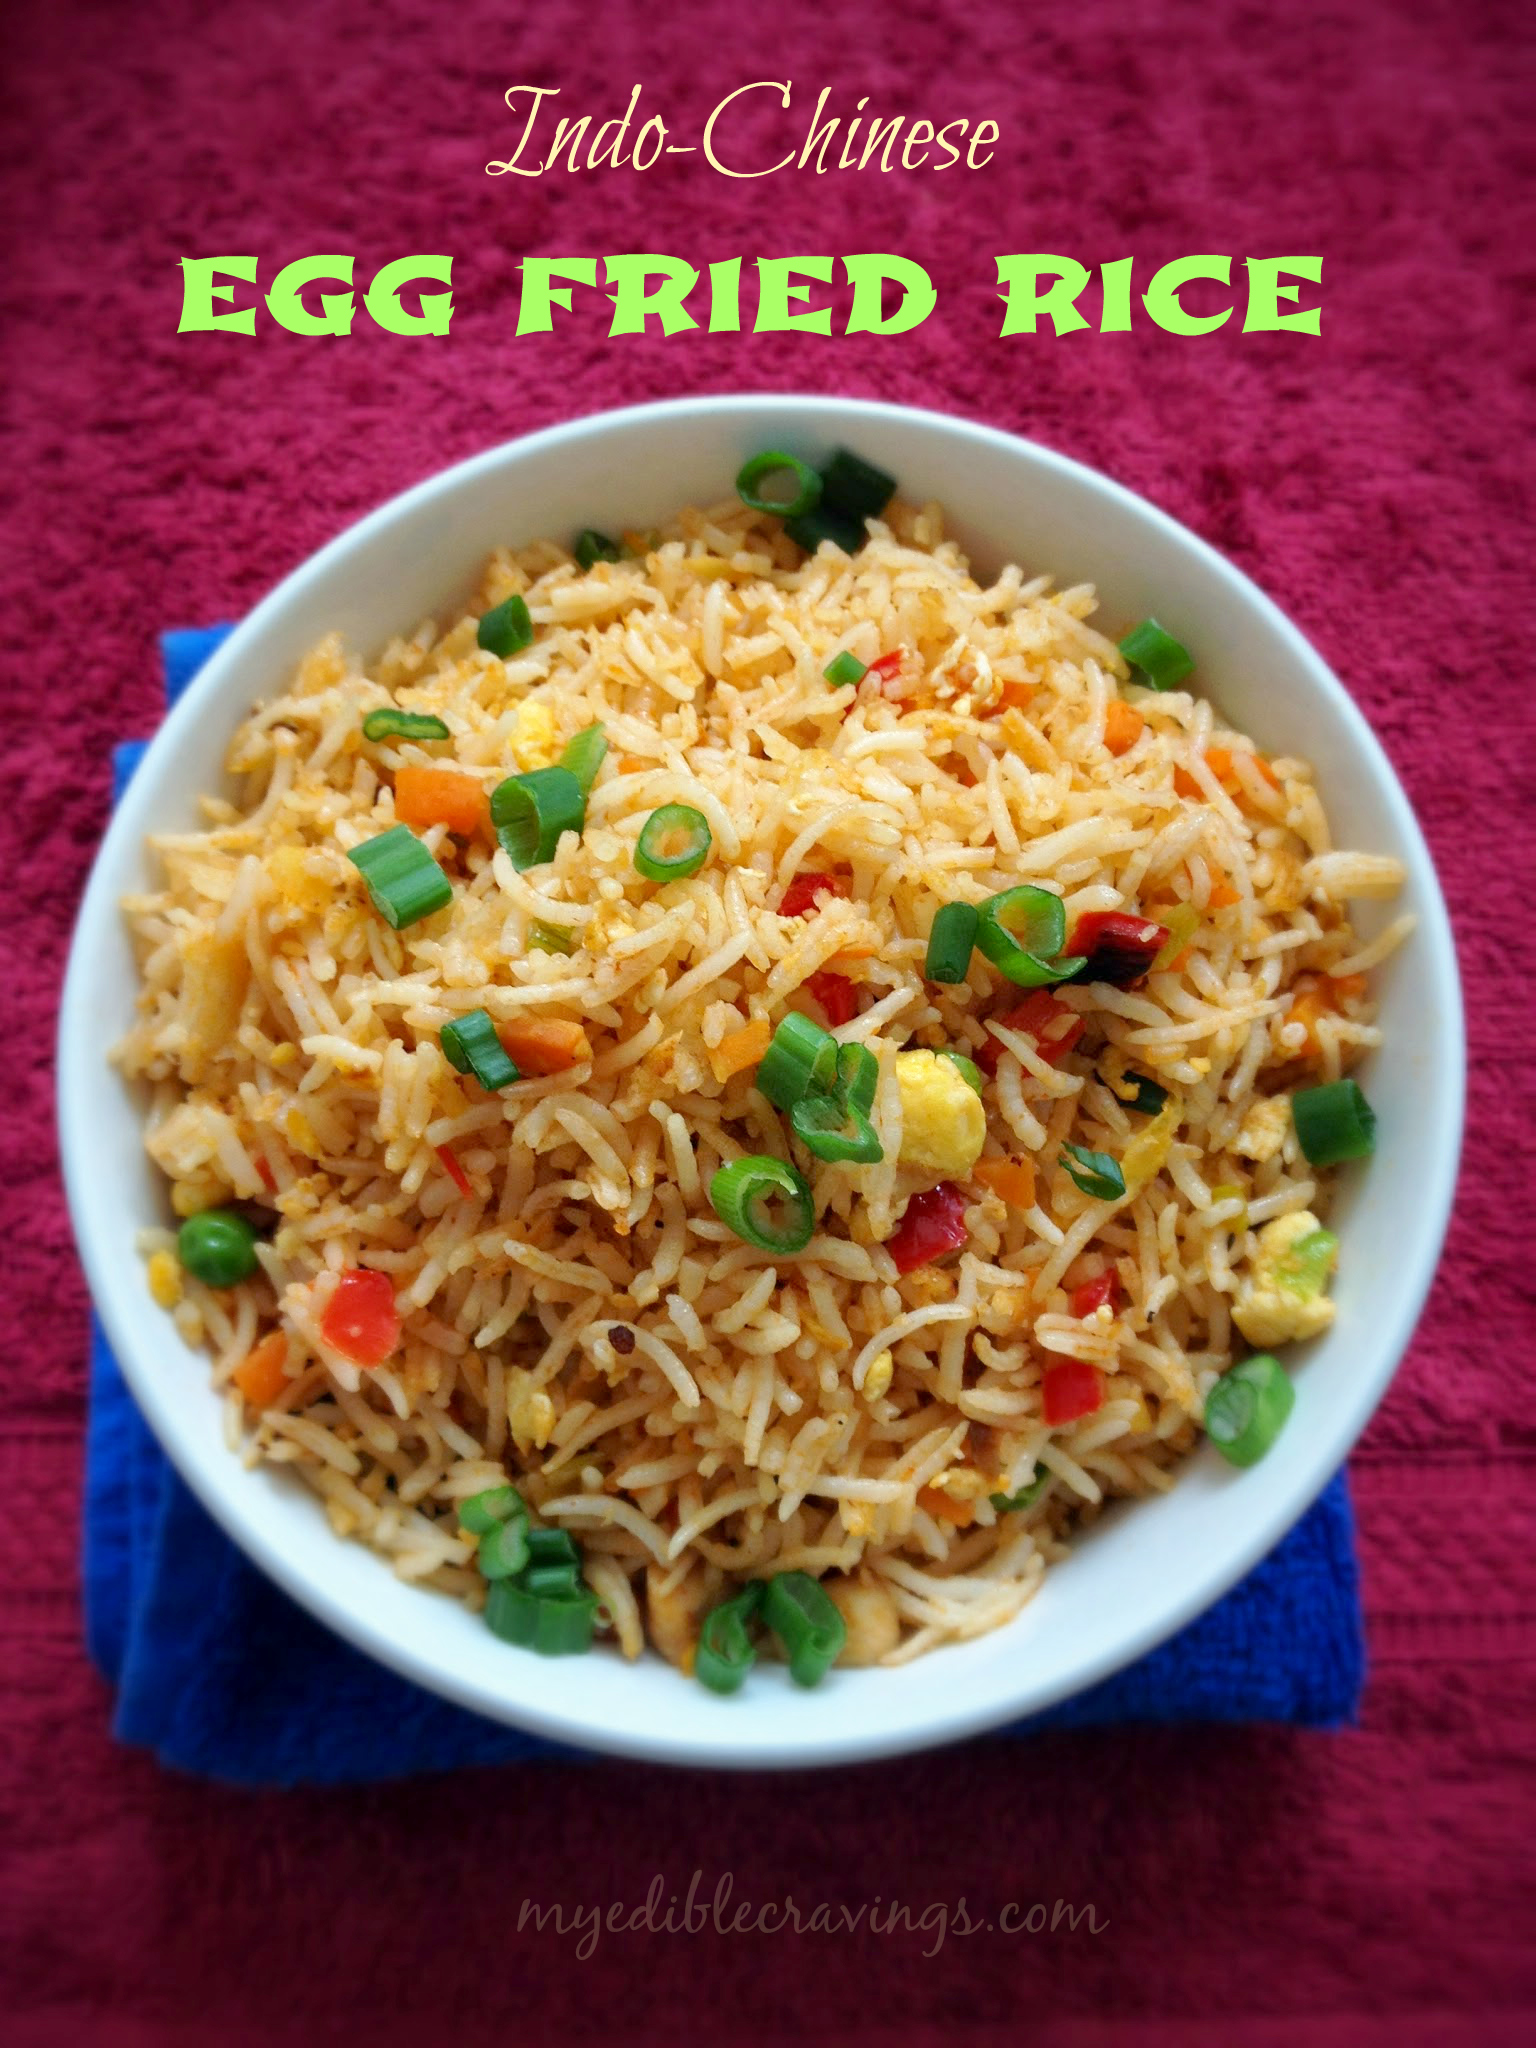 Egg Fried Rice Related Keywords & Suggestions - Chinese Egg Fried Rice ...